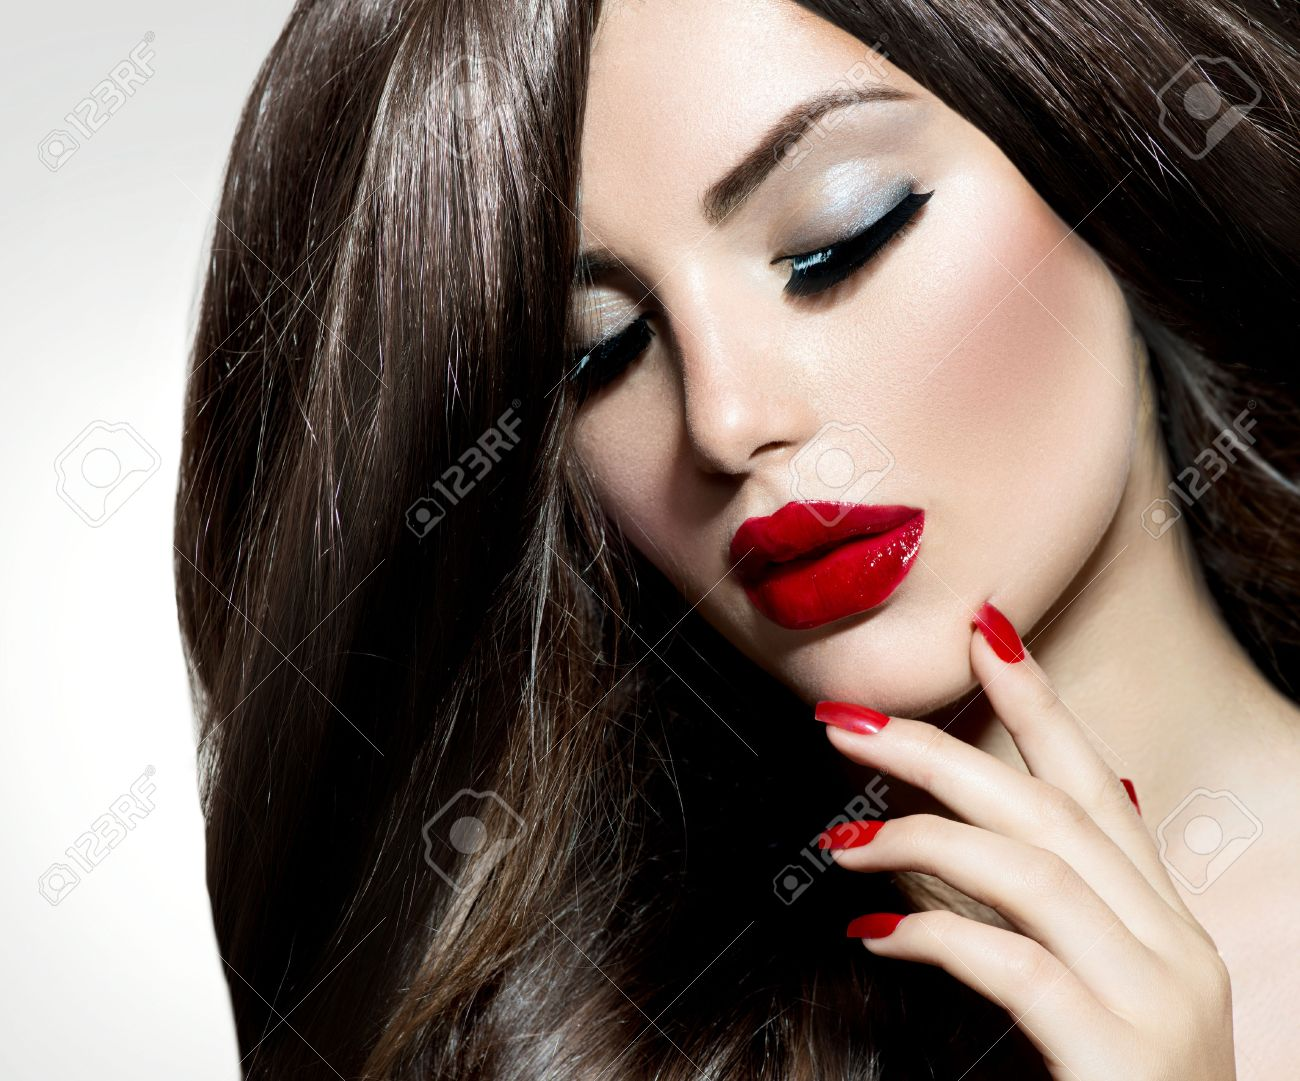 Sexy Beauty Girl with Red Lips and Nails  Provocative Make up Stock Photo - 22454782